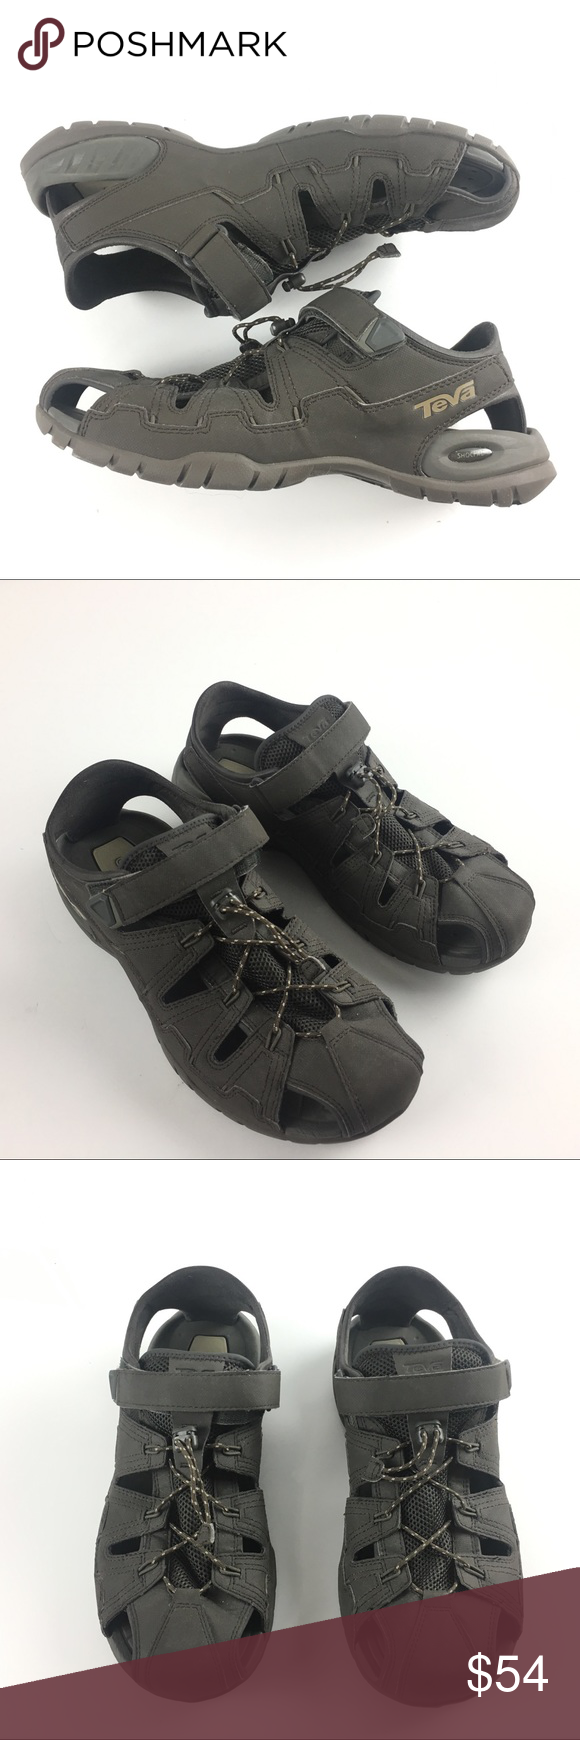 472351465 Teva Sport Men s Sandals Size 11 Dozer 4 Teva Sport Men s Sandals Size 11 Dozer  4 Black Olive Walking Excellent condition. Adjustable strap and drawstring  ...